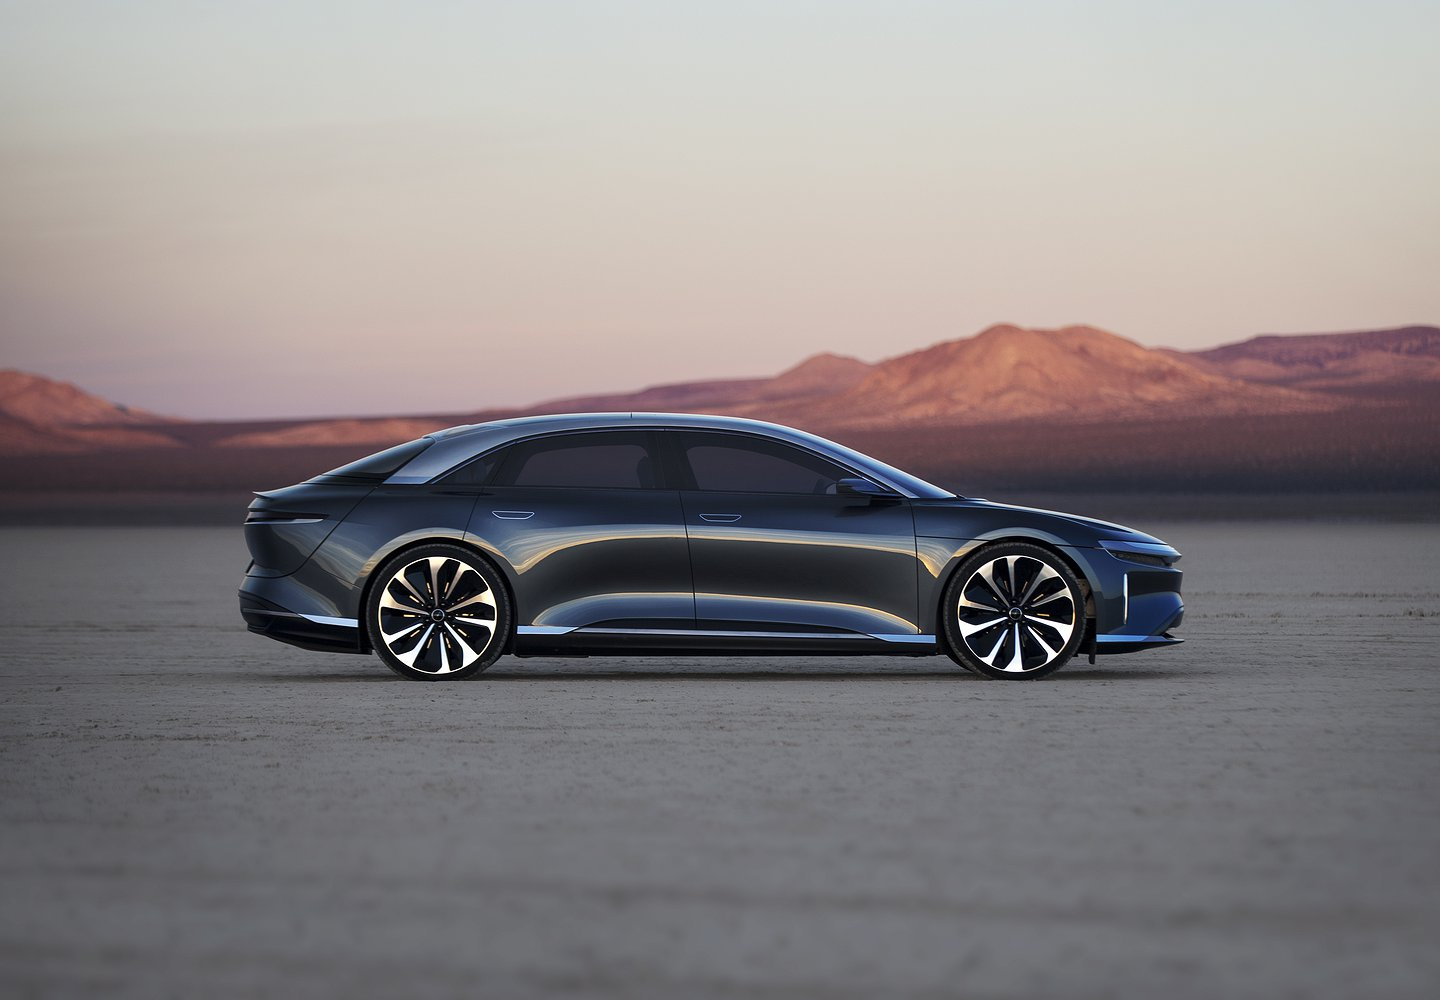 EV Startup Lucid Motors Goes for the Brand Experience